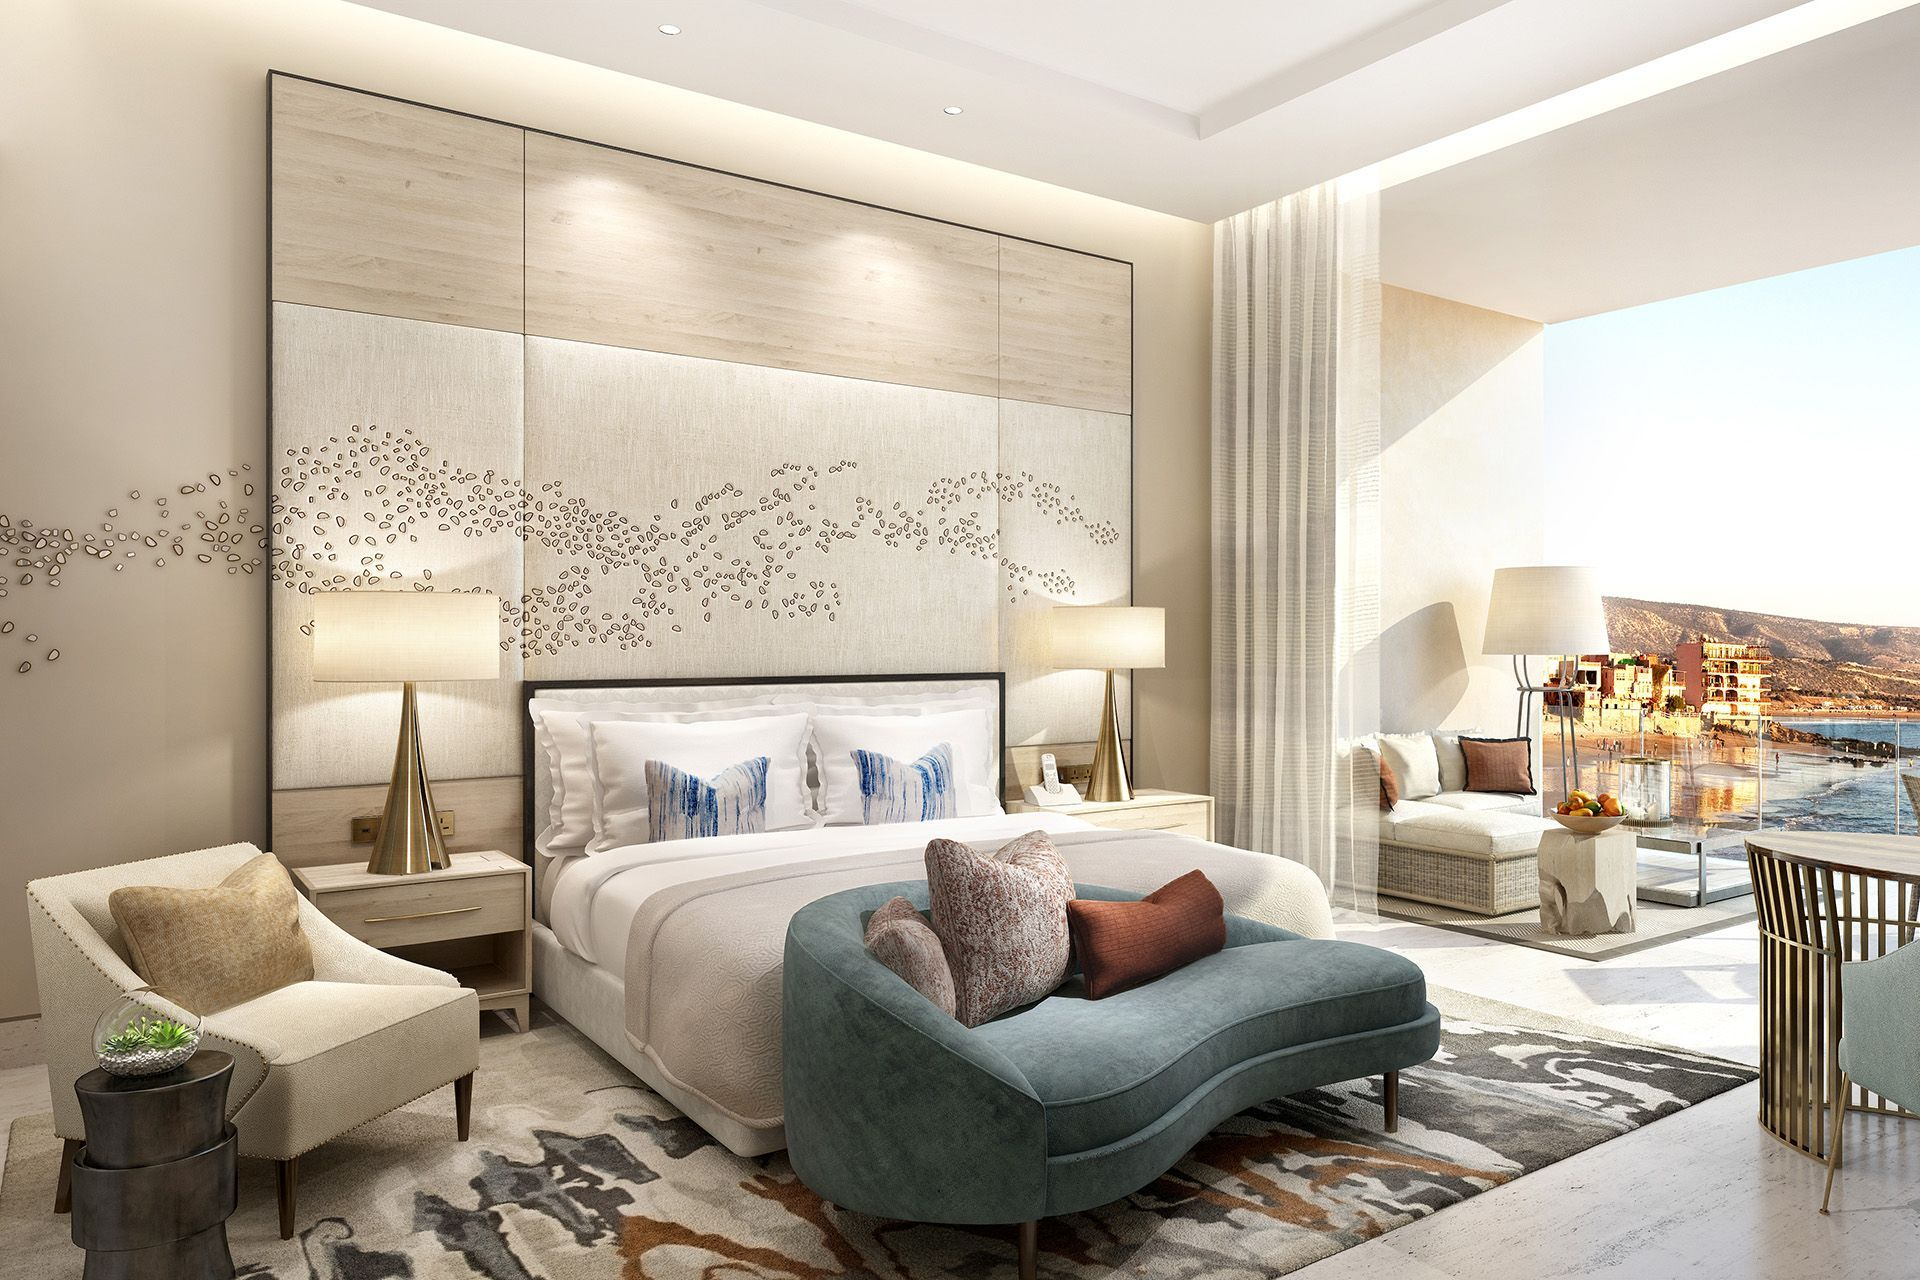 Four seasons taghazout interior designers wimberly for Interior designs for bed rooms